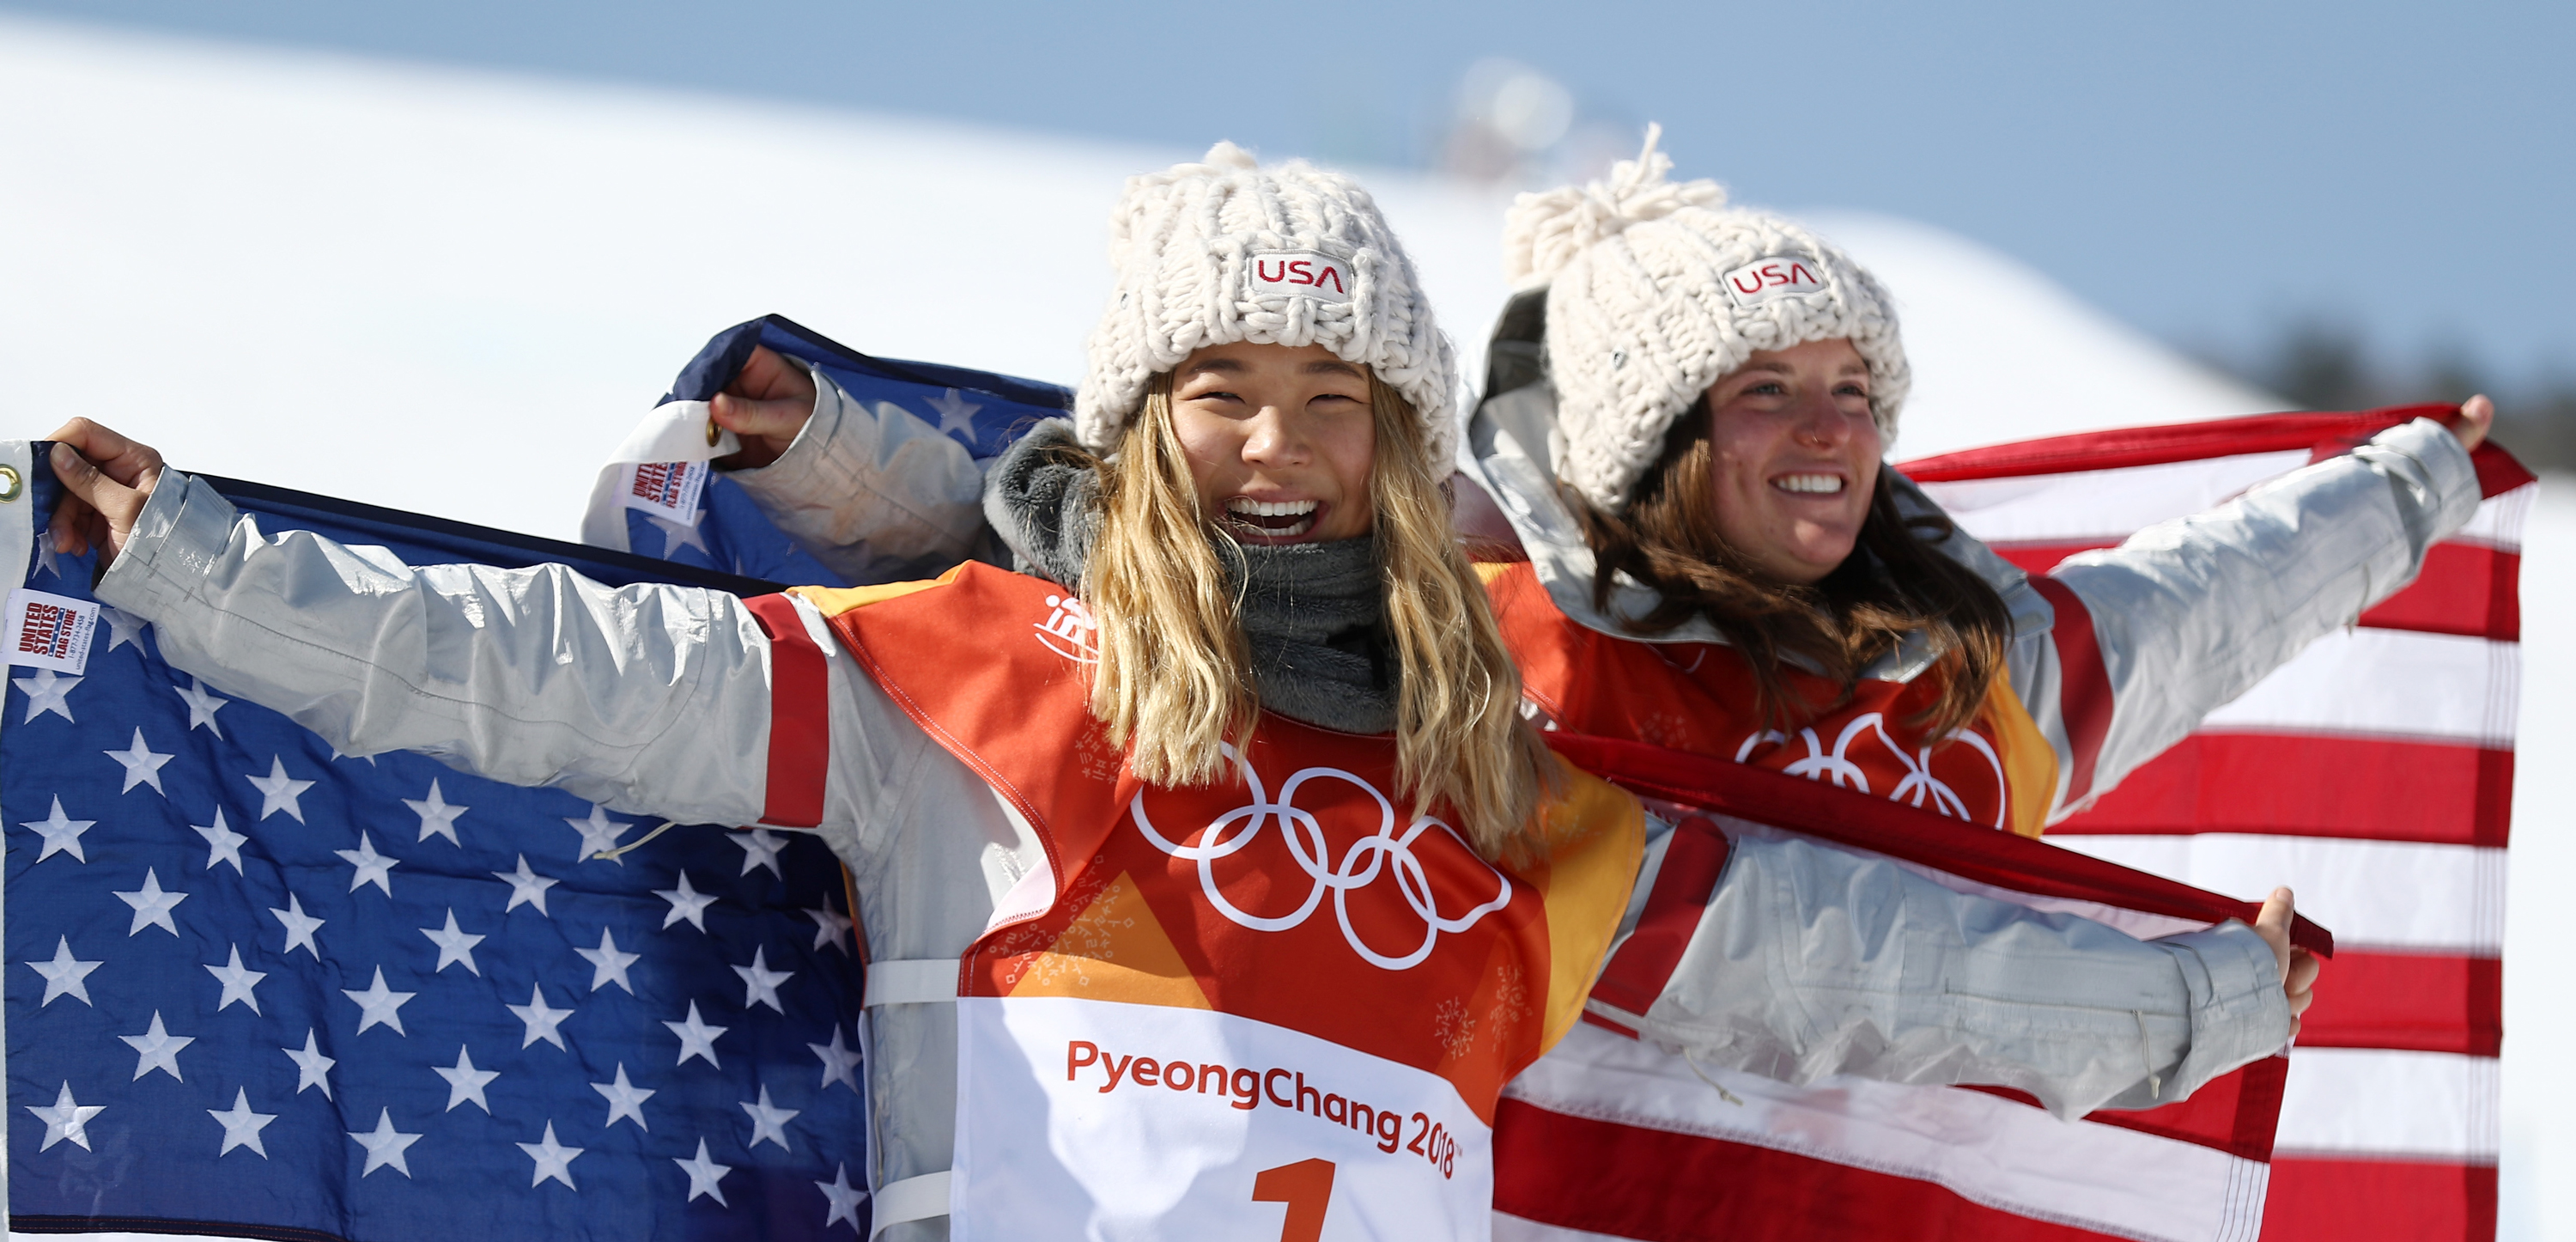 Gold medalist Chloe Kim and bronze medalist Arielle Gold celebrate following the halfpipe final at the 2018 Olympic Winter Games Tuesday. (Getty Images - Clive Rose)